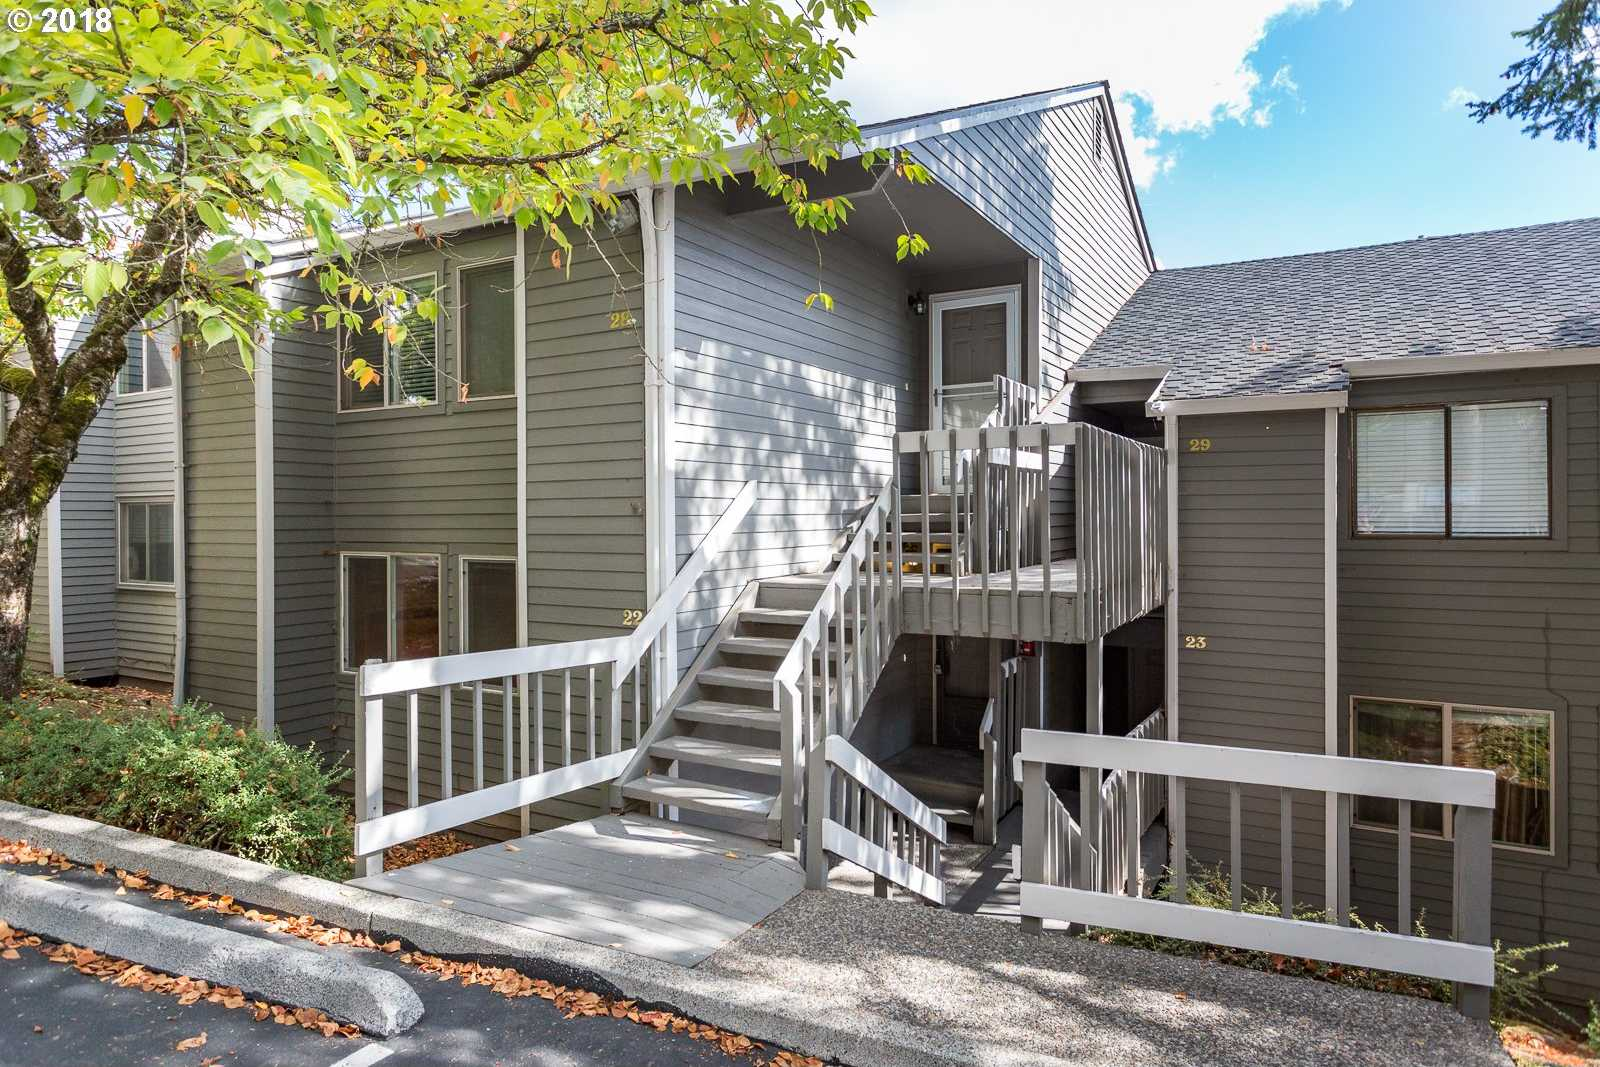 $254,900 - 3Br/2Ba -  for Sale in Mountain Park, Lake Oswego